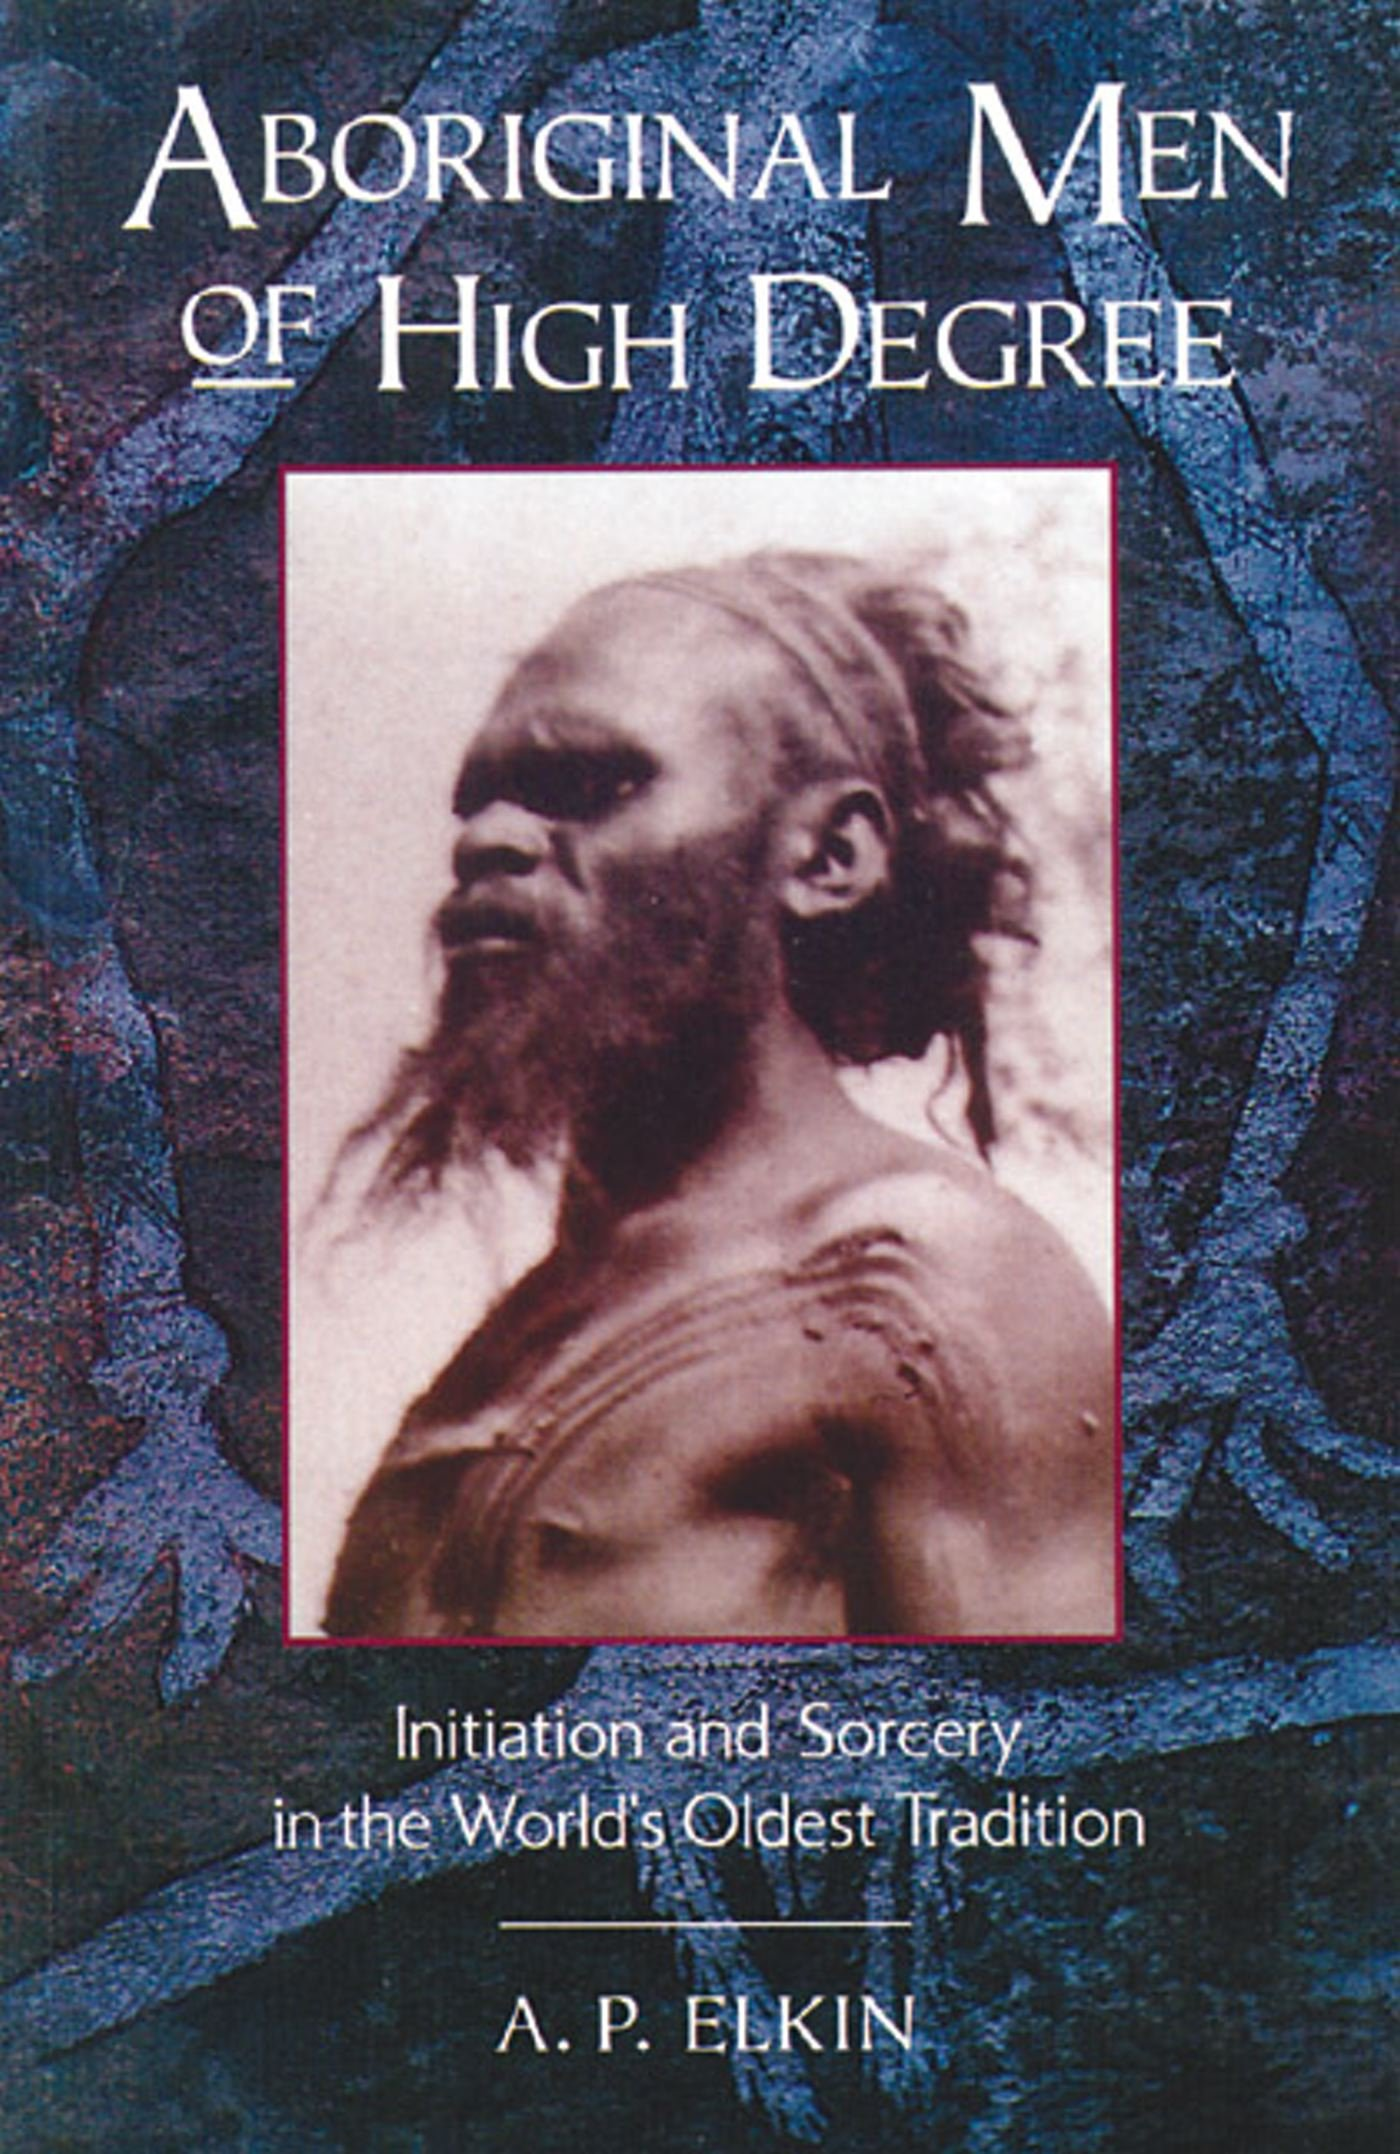 Aboriginal Men of High Degree: Initiation and Sorcery in the